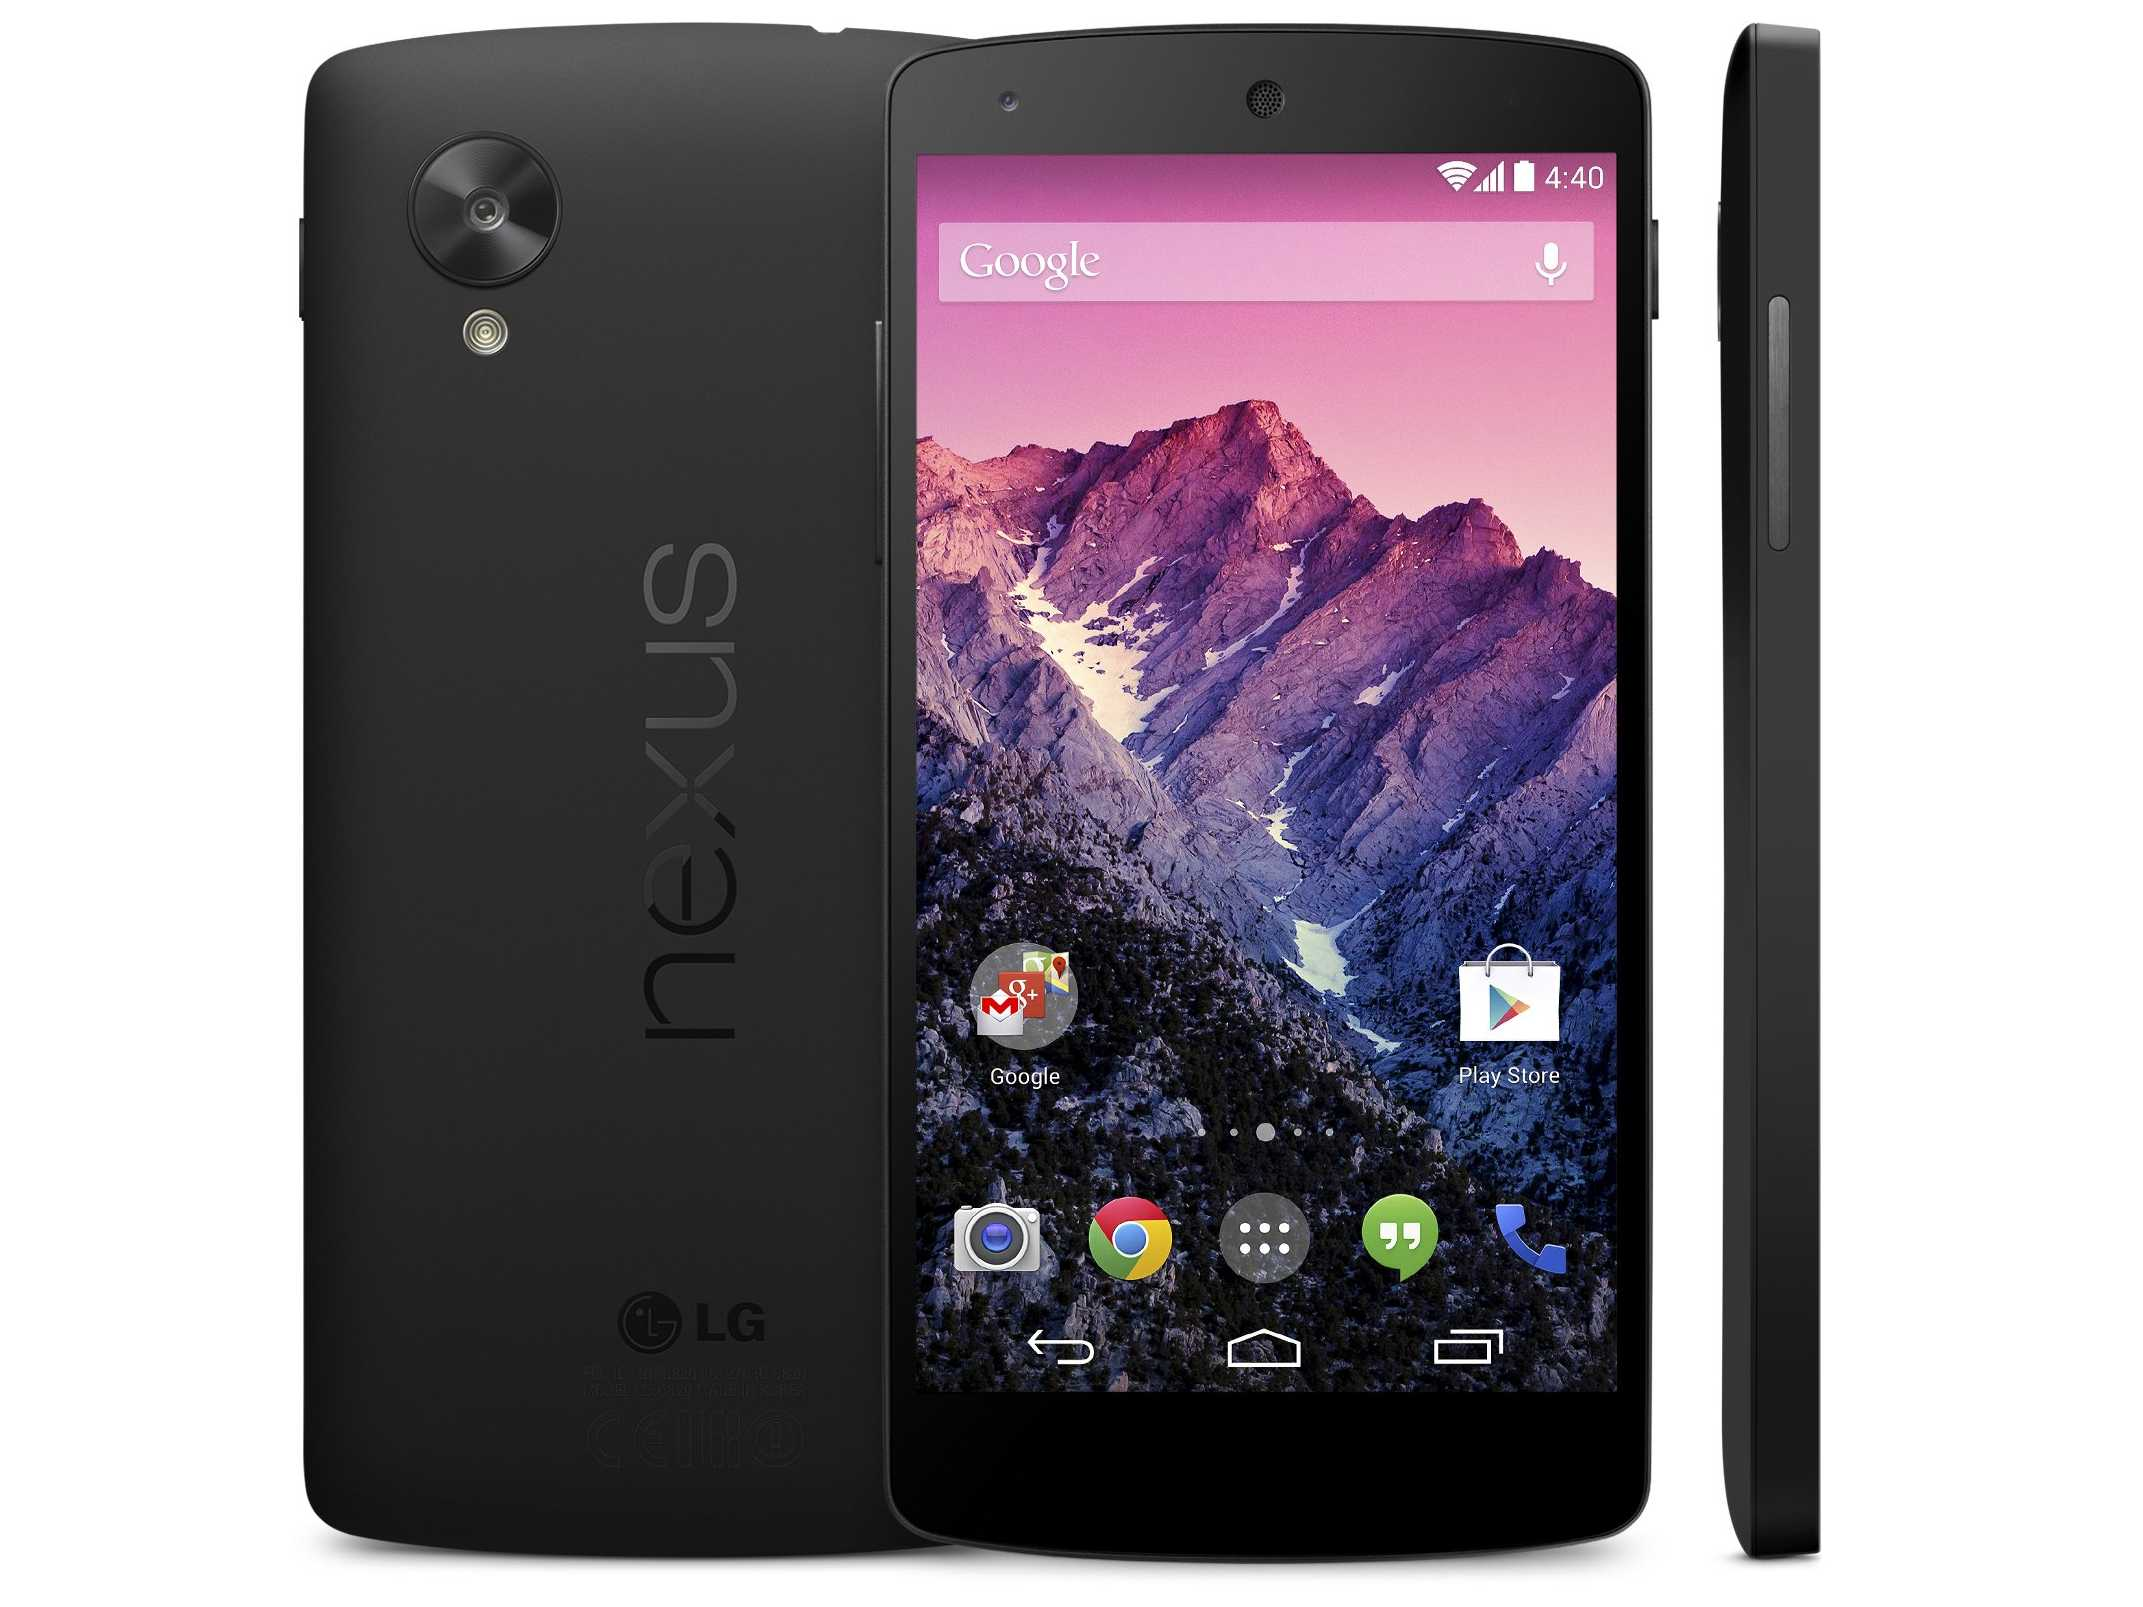 Google Nexus 5 and Android 4.4 KitKat Preview - Nexus 5